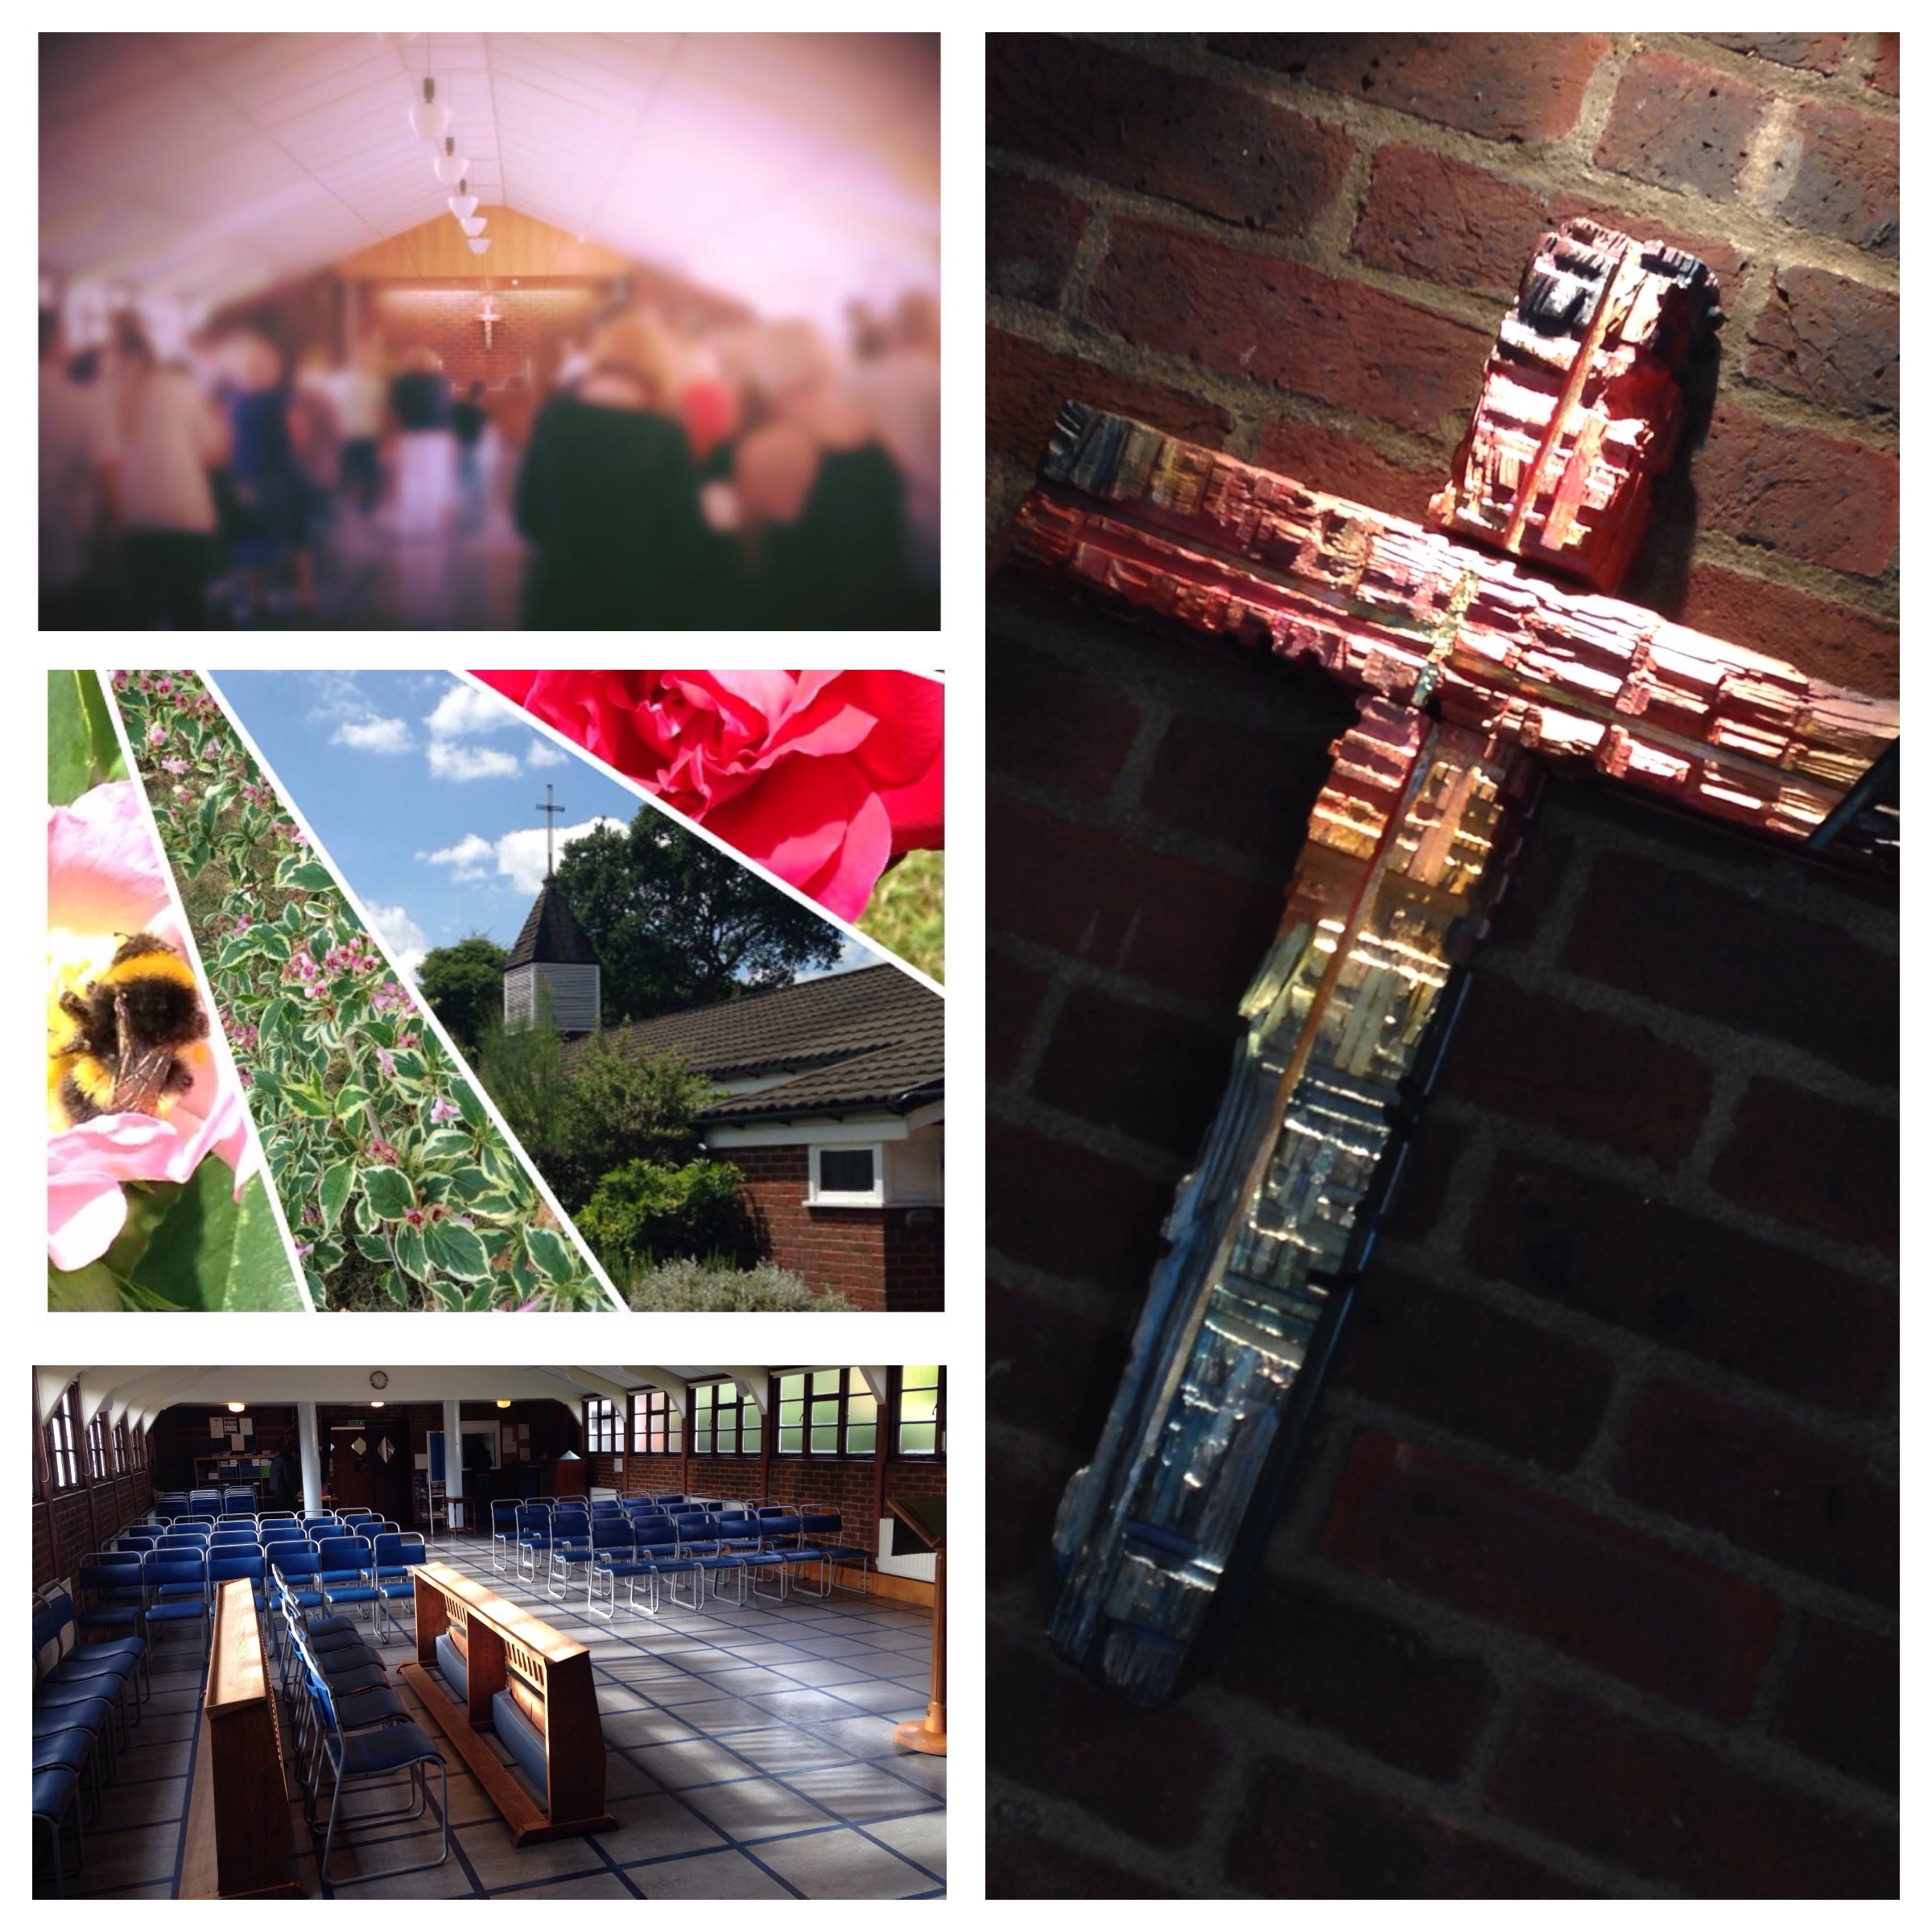 Communion @ St John's | Walton-on-Thames | United Kingdom